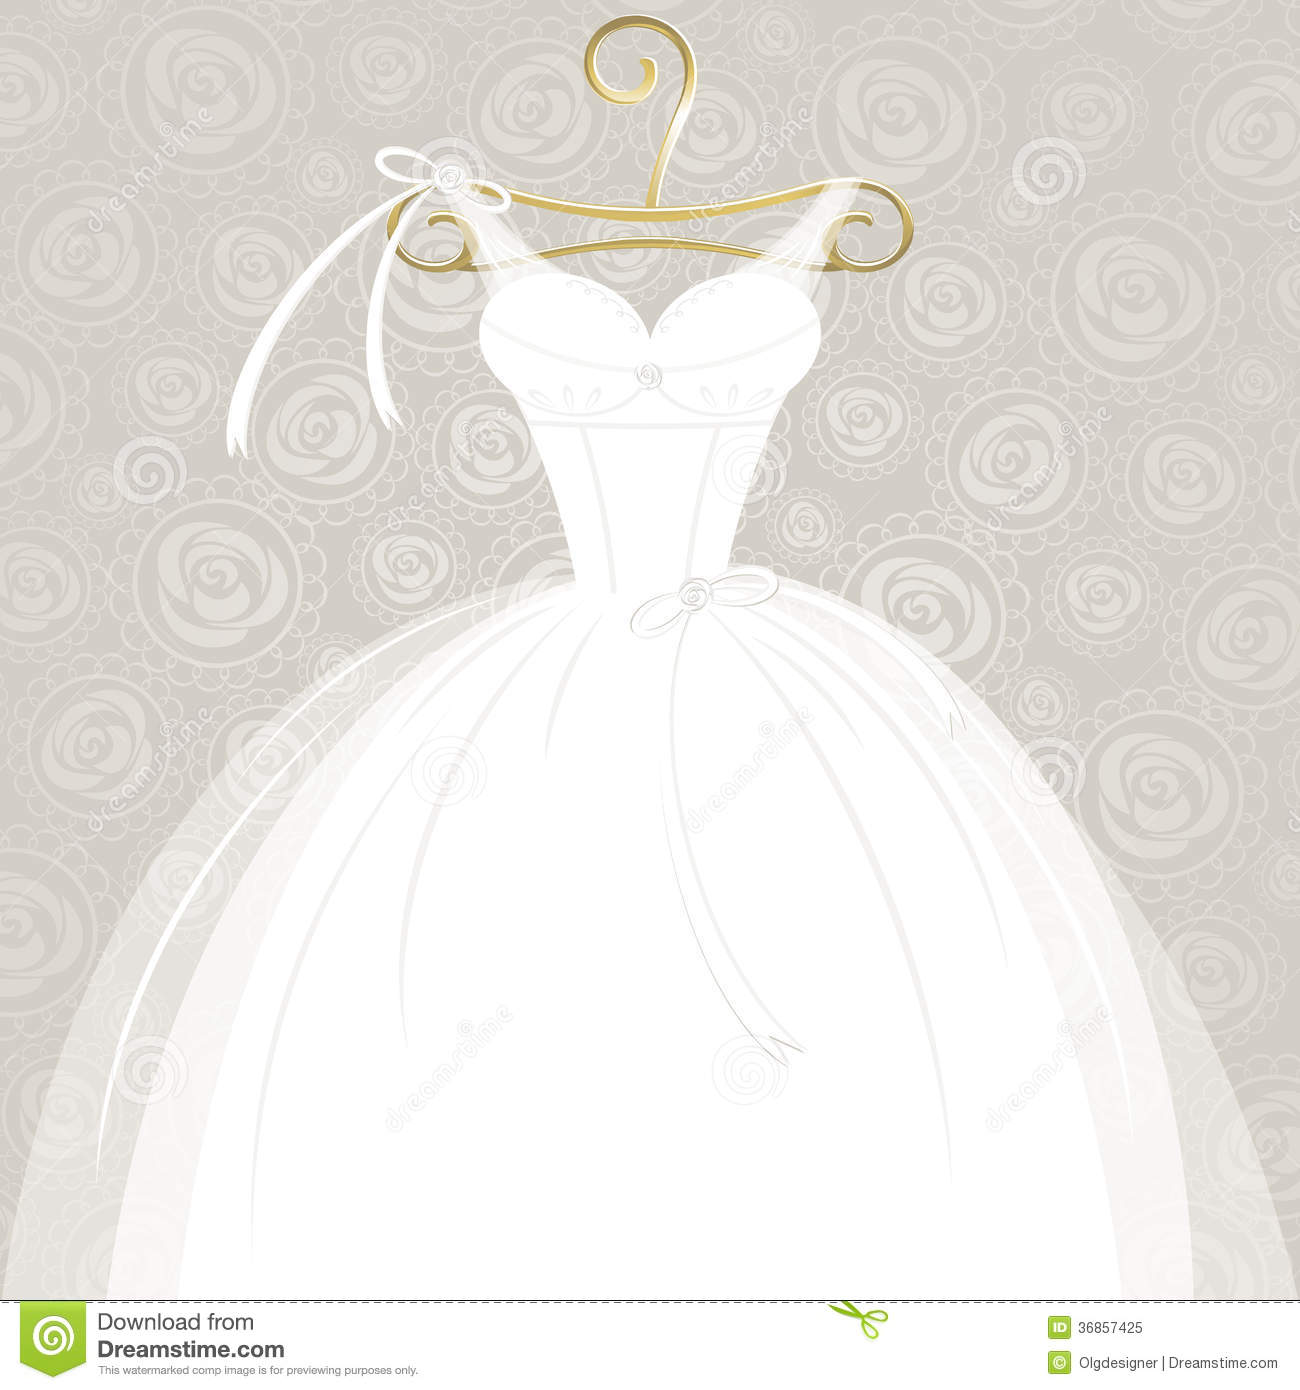 Wedding Gown Clip Art: White Wedding Gown Stock Vector. Illustration Of Album